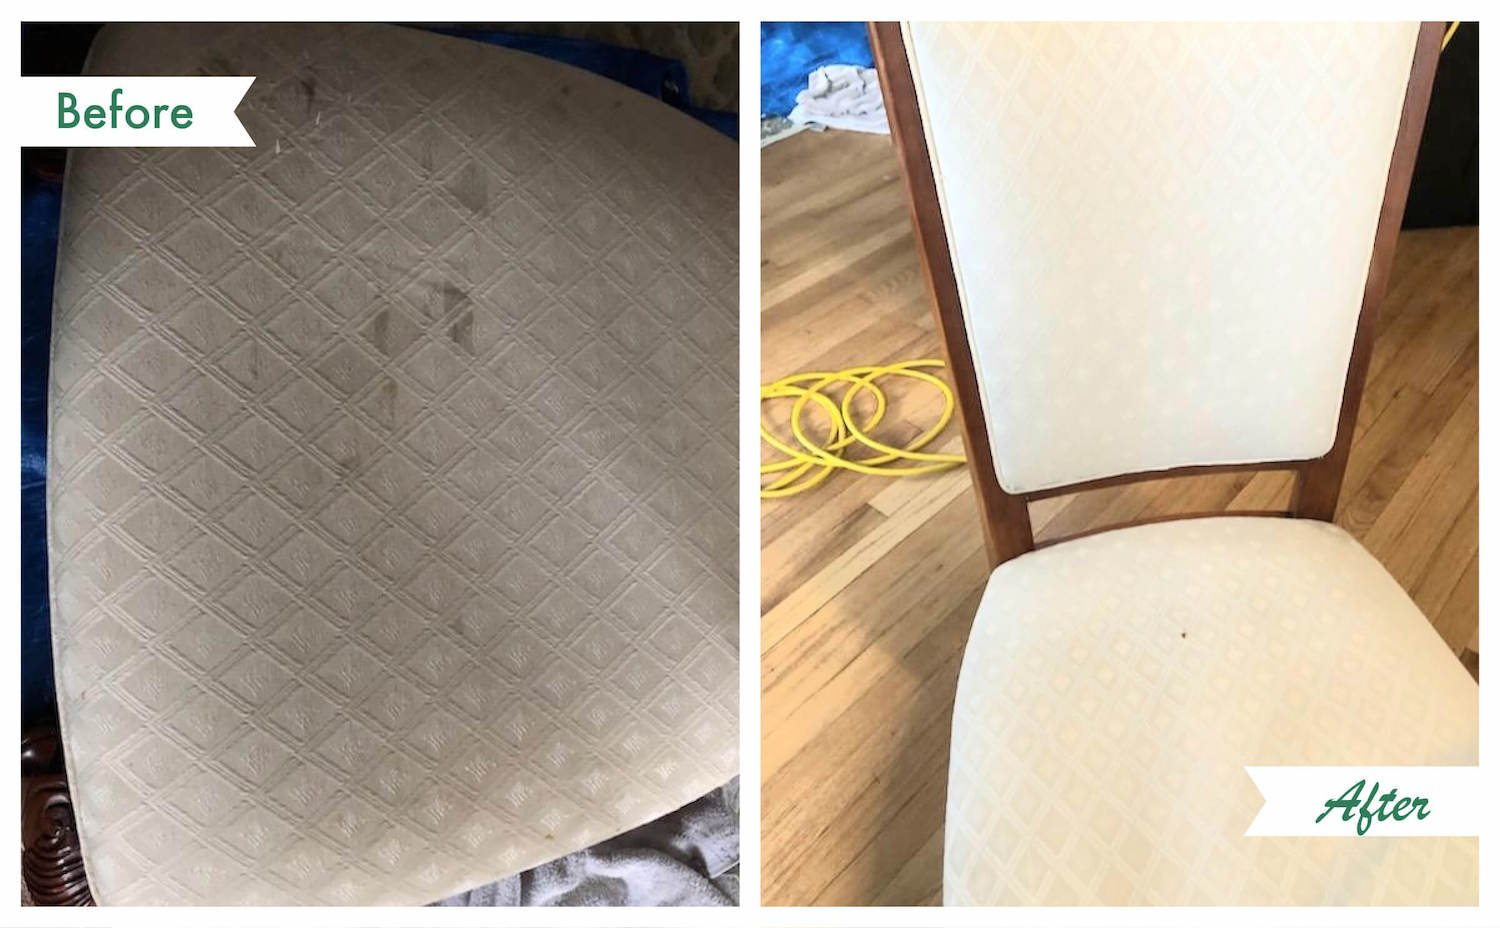 before and after upholstery cleaning in Chicago